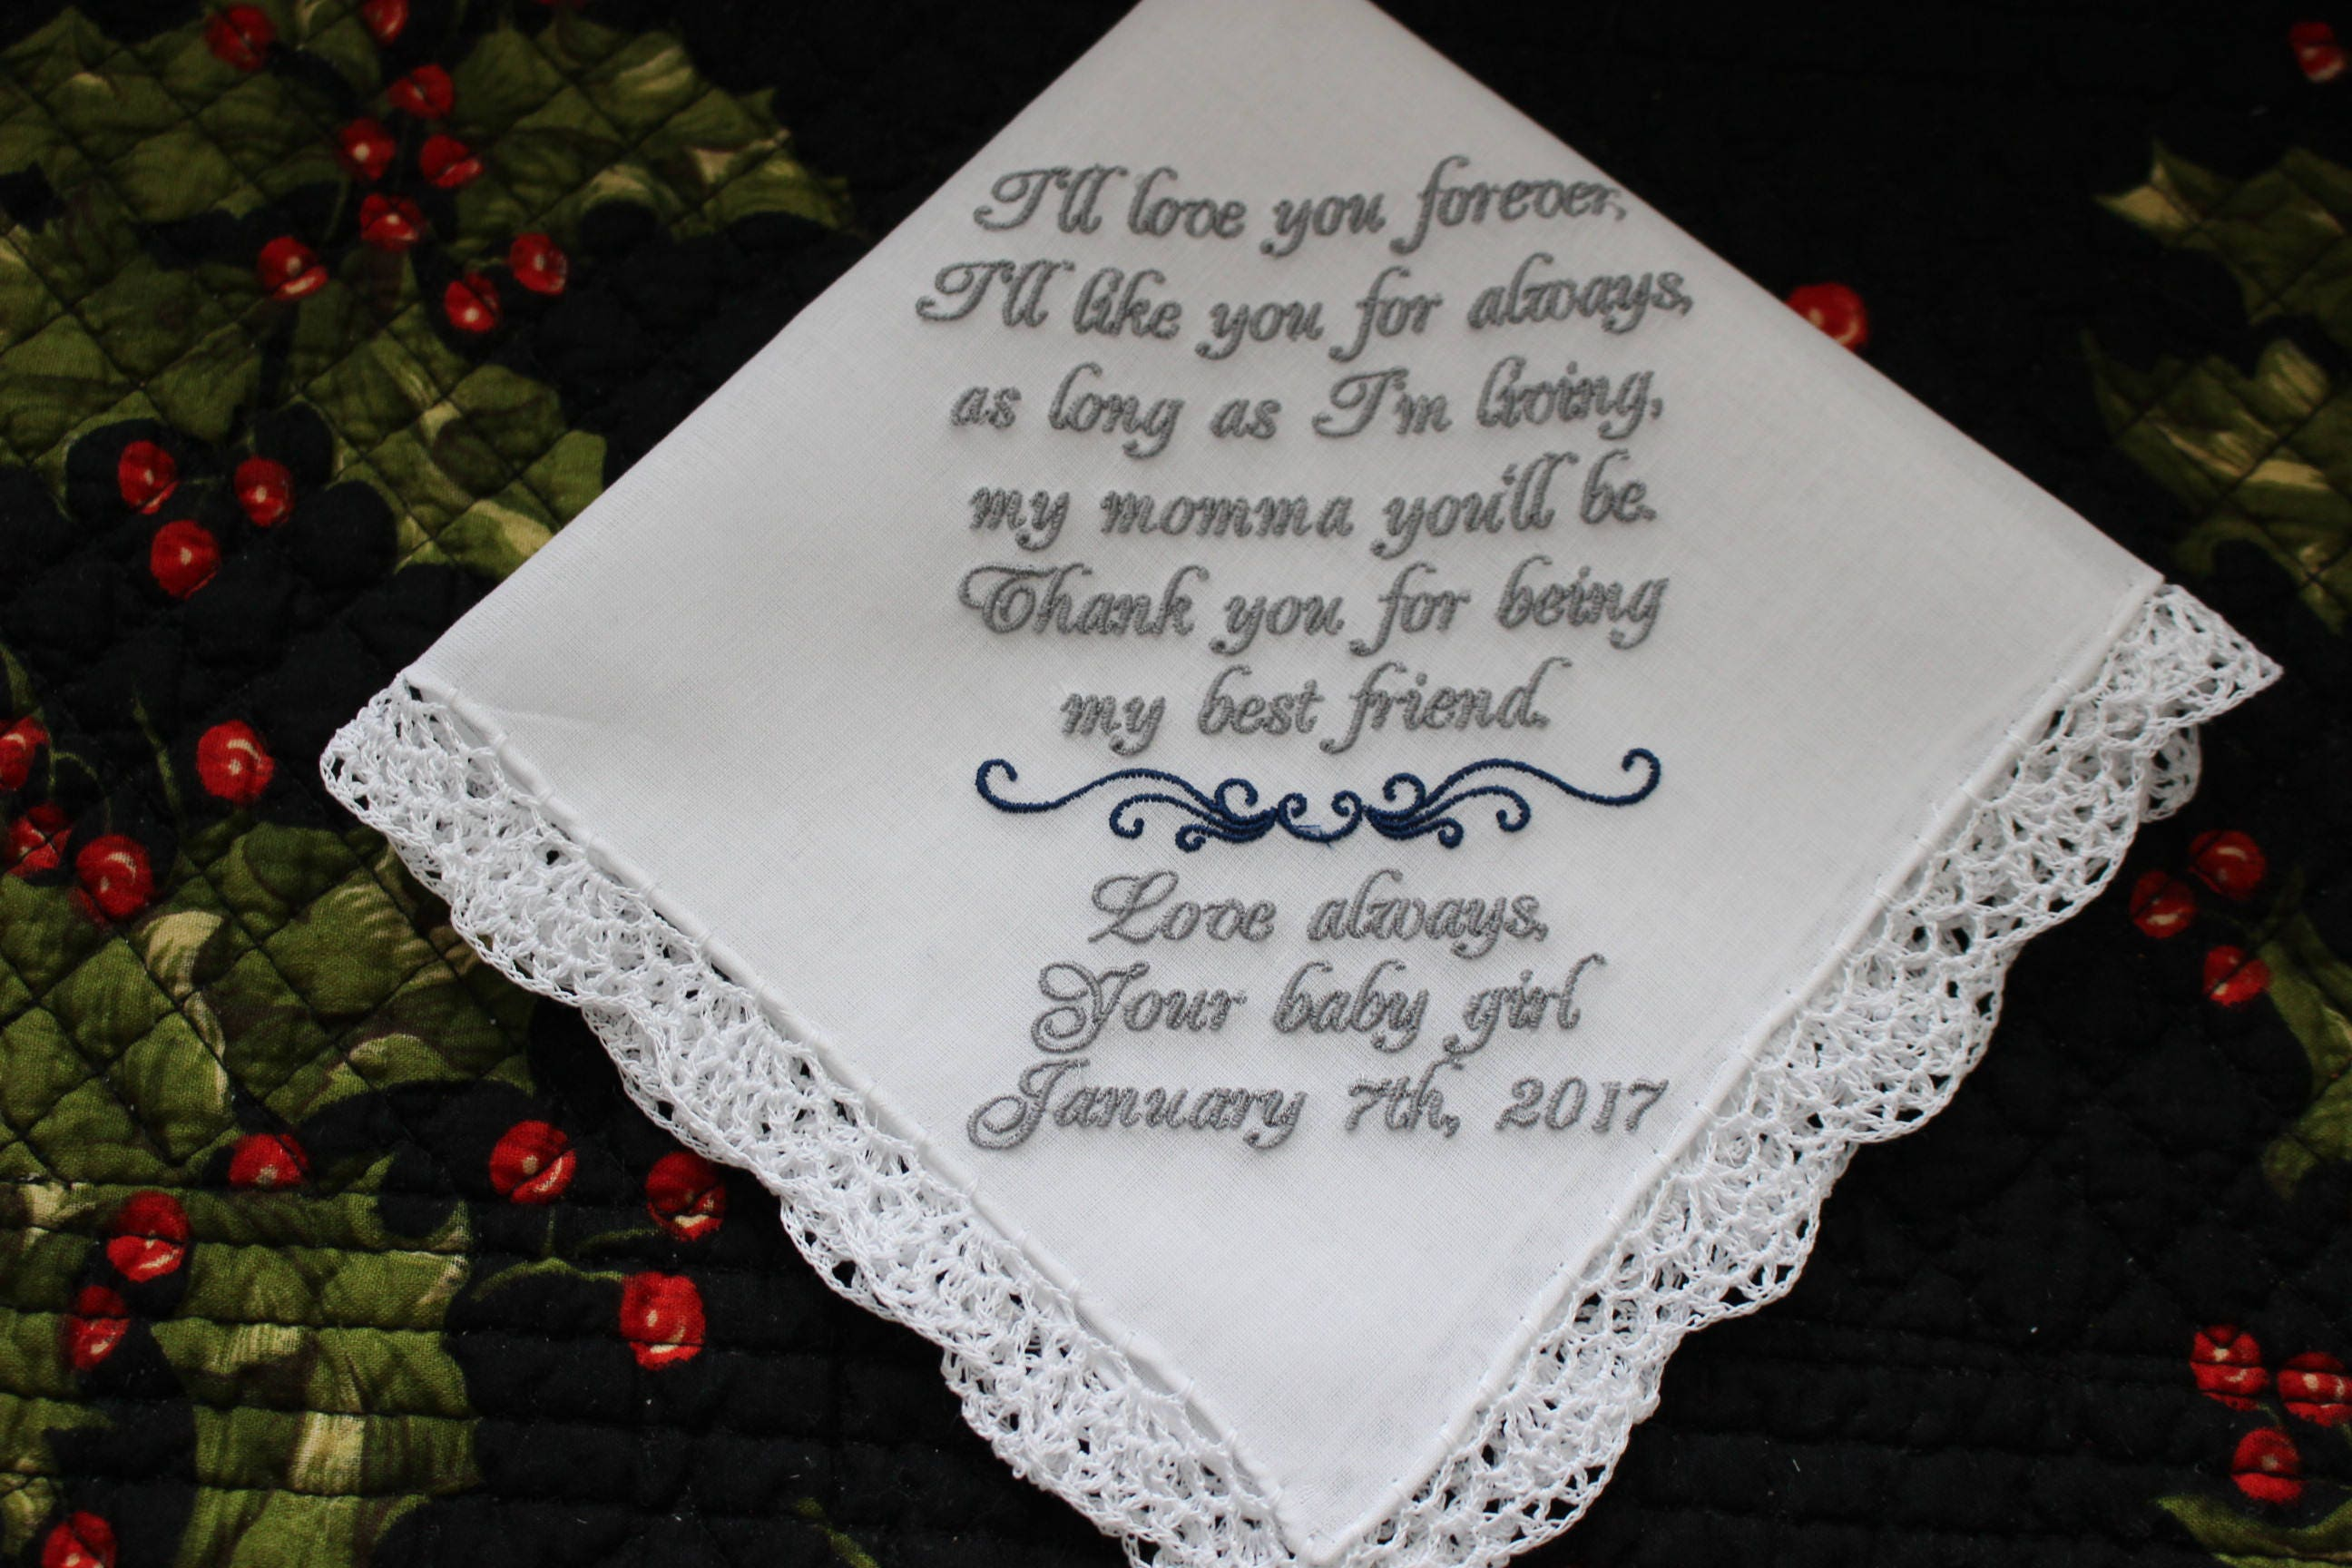 Wedding Handkerchief, Mother of the Bride Gift, Parents Wedding Gift, Embroidered  Handkerchief, Bridal Handkerchief, Love You Forever Hankie